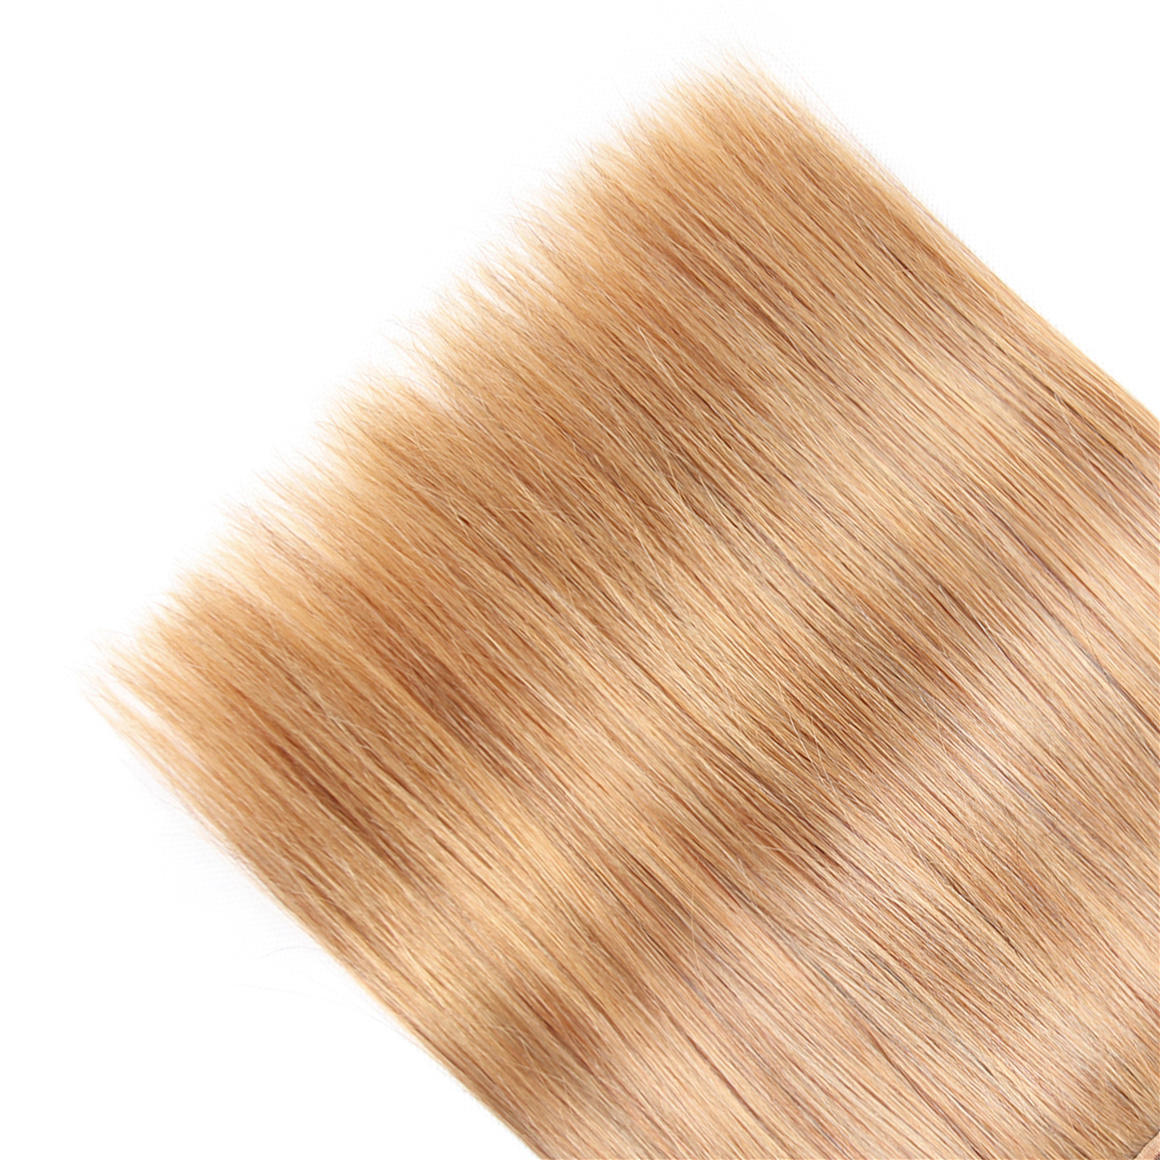 27 Hair Color 4 Bundles With Fronal 13×4 Deal